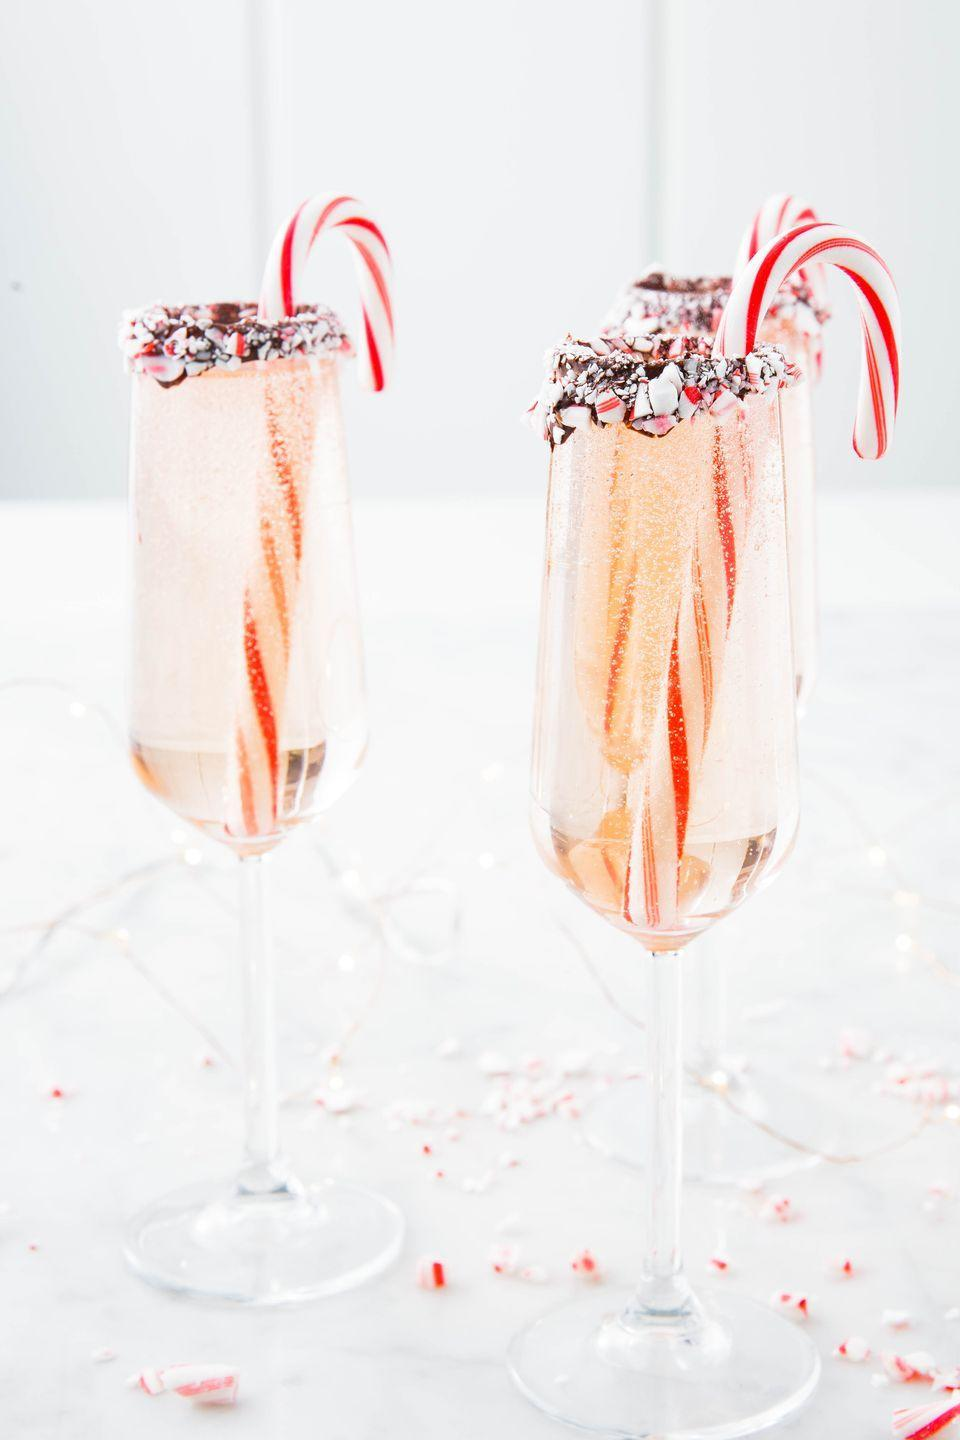 """<p>The perfect way to get into the holiday spirit. </p><p>Get the recipe from <a href=""""https://www.delish.com/cooking/recipe-ideas/a25128817/peppermint-bark-mimosas-recipe/"""" rel=""""nofollow noopener"""" target=""""_blank"""" data-ylk=""""slk:Delish"""" class=""""link rapid-noclick-resp"""">Delish</a>. </p>"""